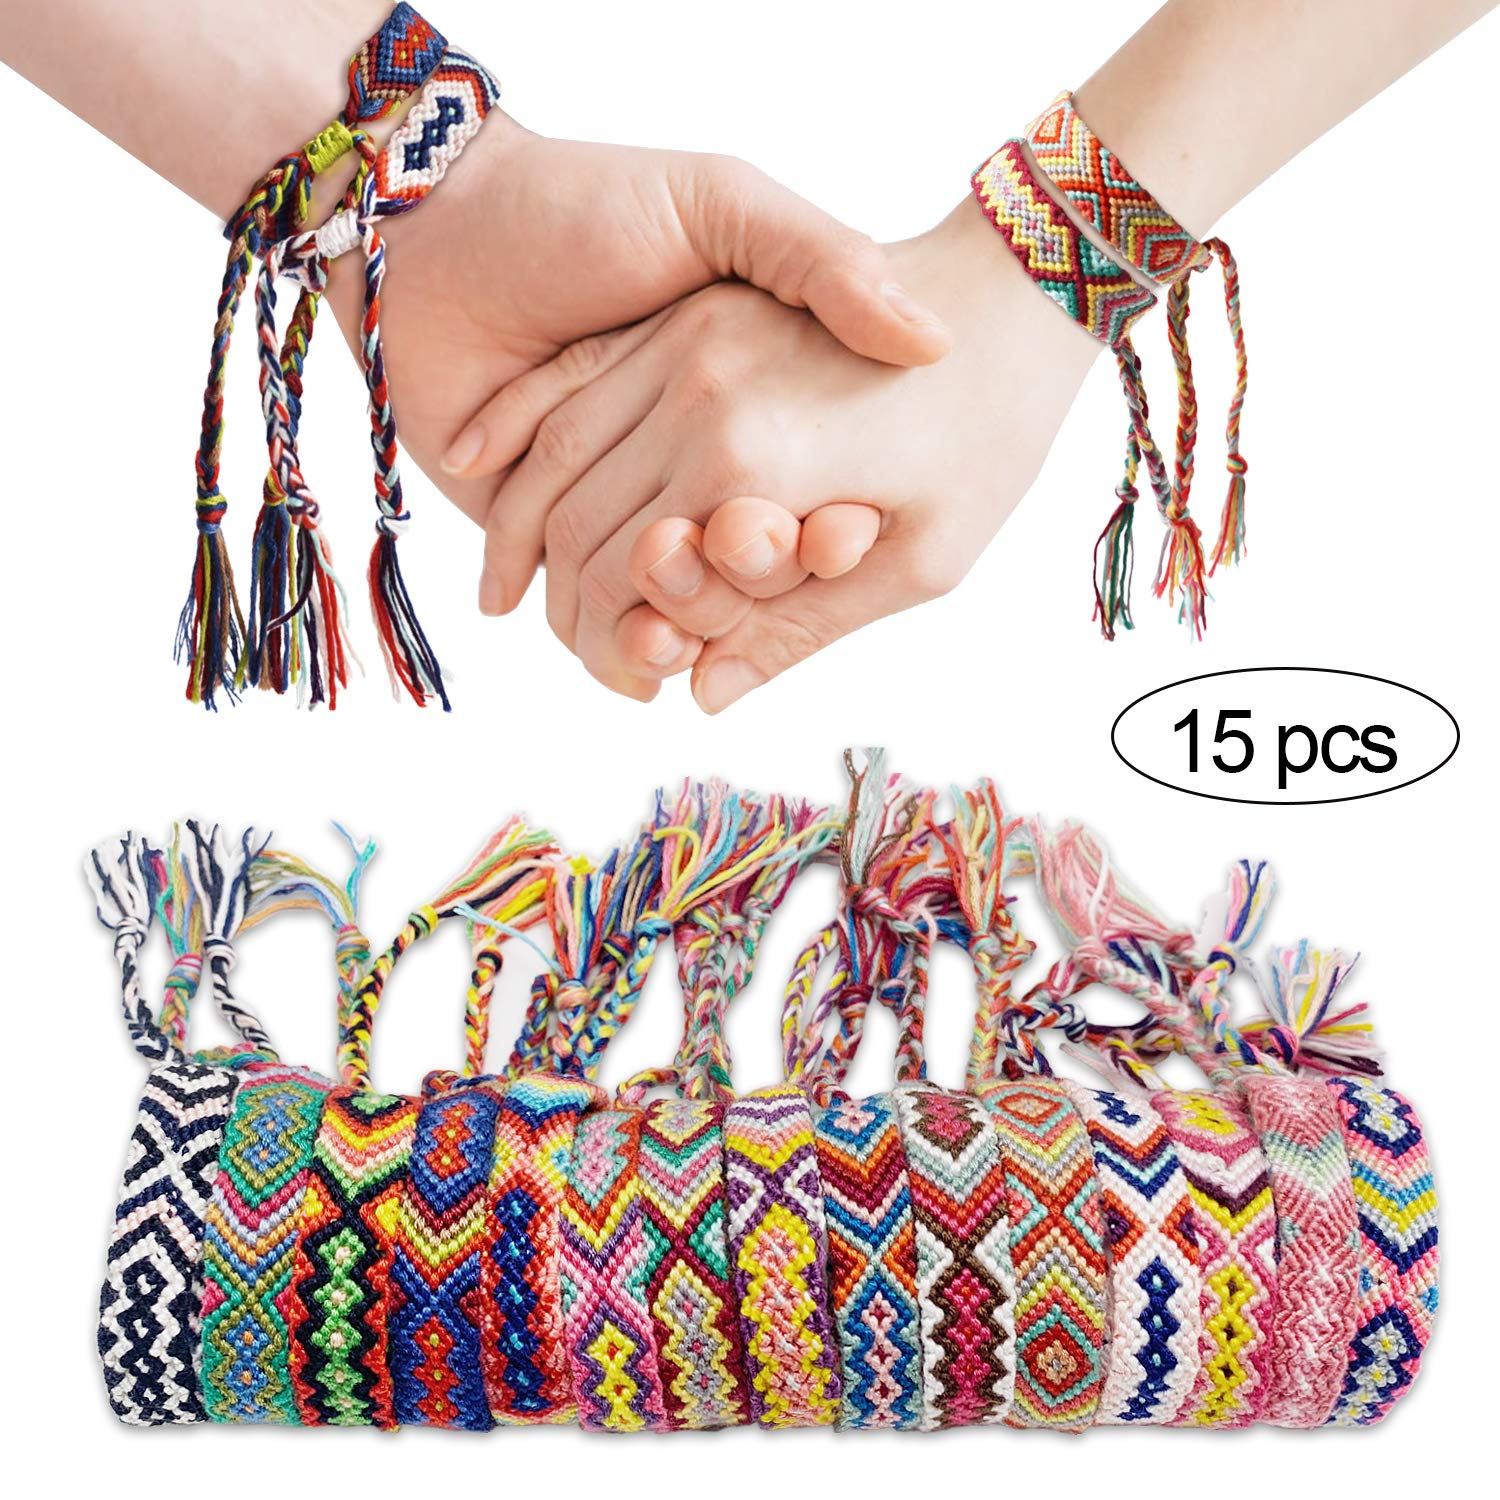 SYOSIN Nepal Friendship Bracelets, Colored Braided Bracelets, Play Bracelets with a Adjustable Size Sliding Knot Closure for Couples, Children, Women and Men, as Bracelet, Anklet (Pack of 15) by SYOSIN-HL